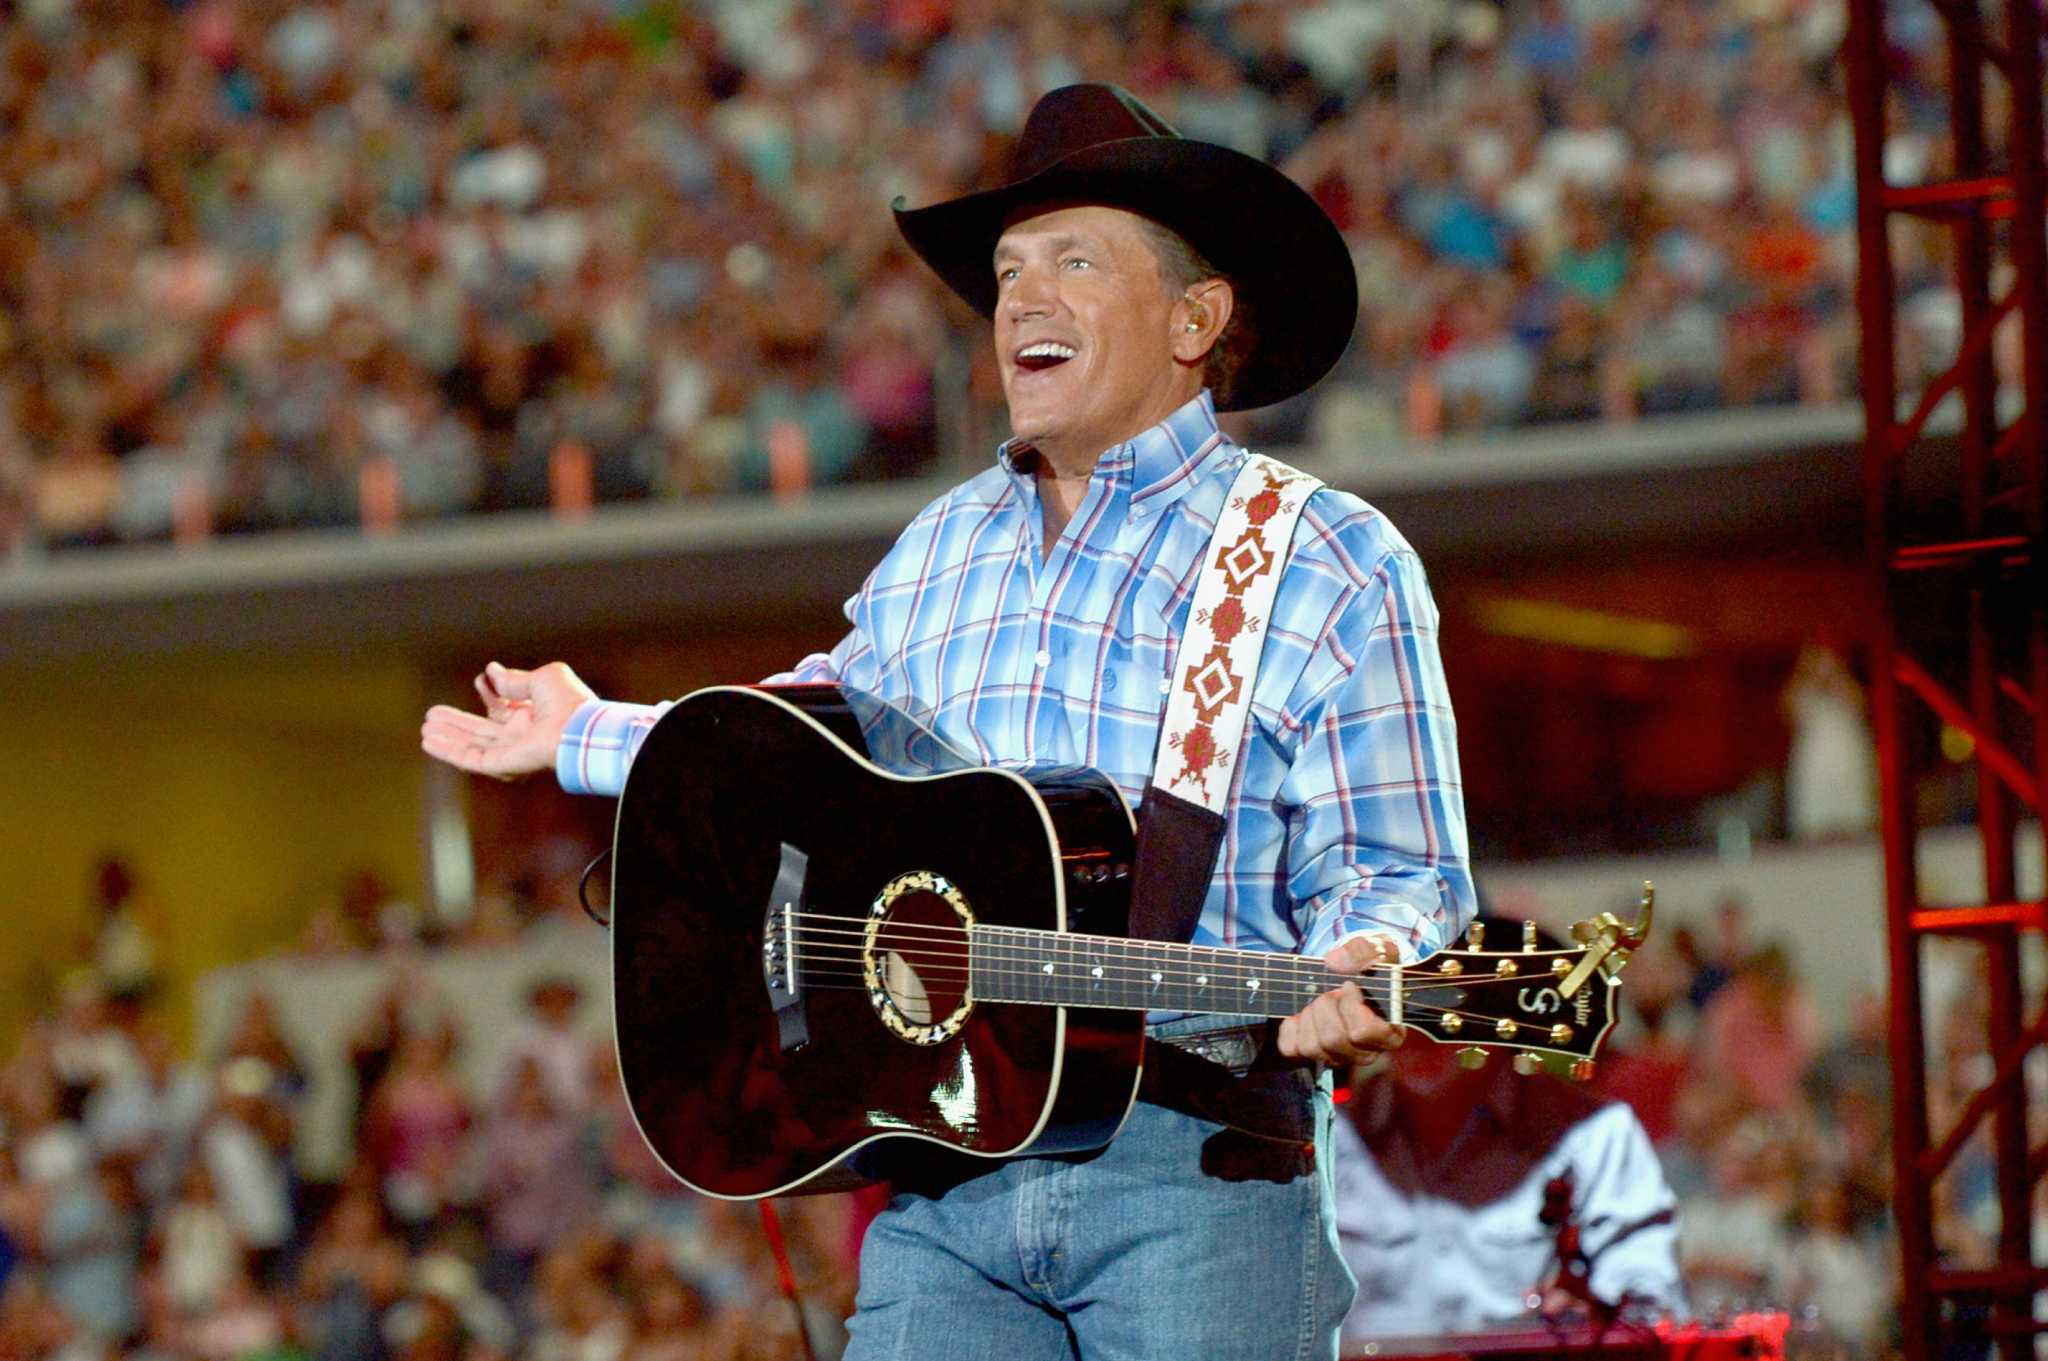 george strait king of country music George harvey strait (born may 18, 1952 in pearsall, texas) is an american country music artist he is known for his unique style of western swing music, bar-room ballads, honky-tonk style, and fresh yet traditional country western music.